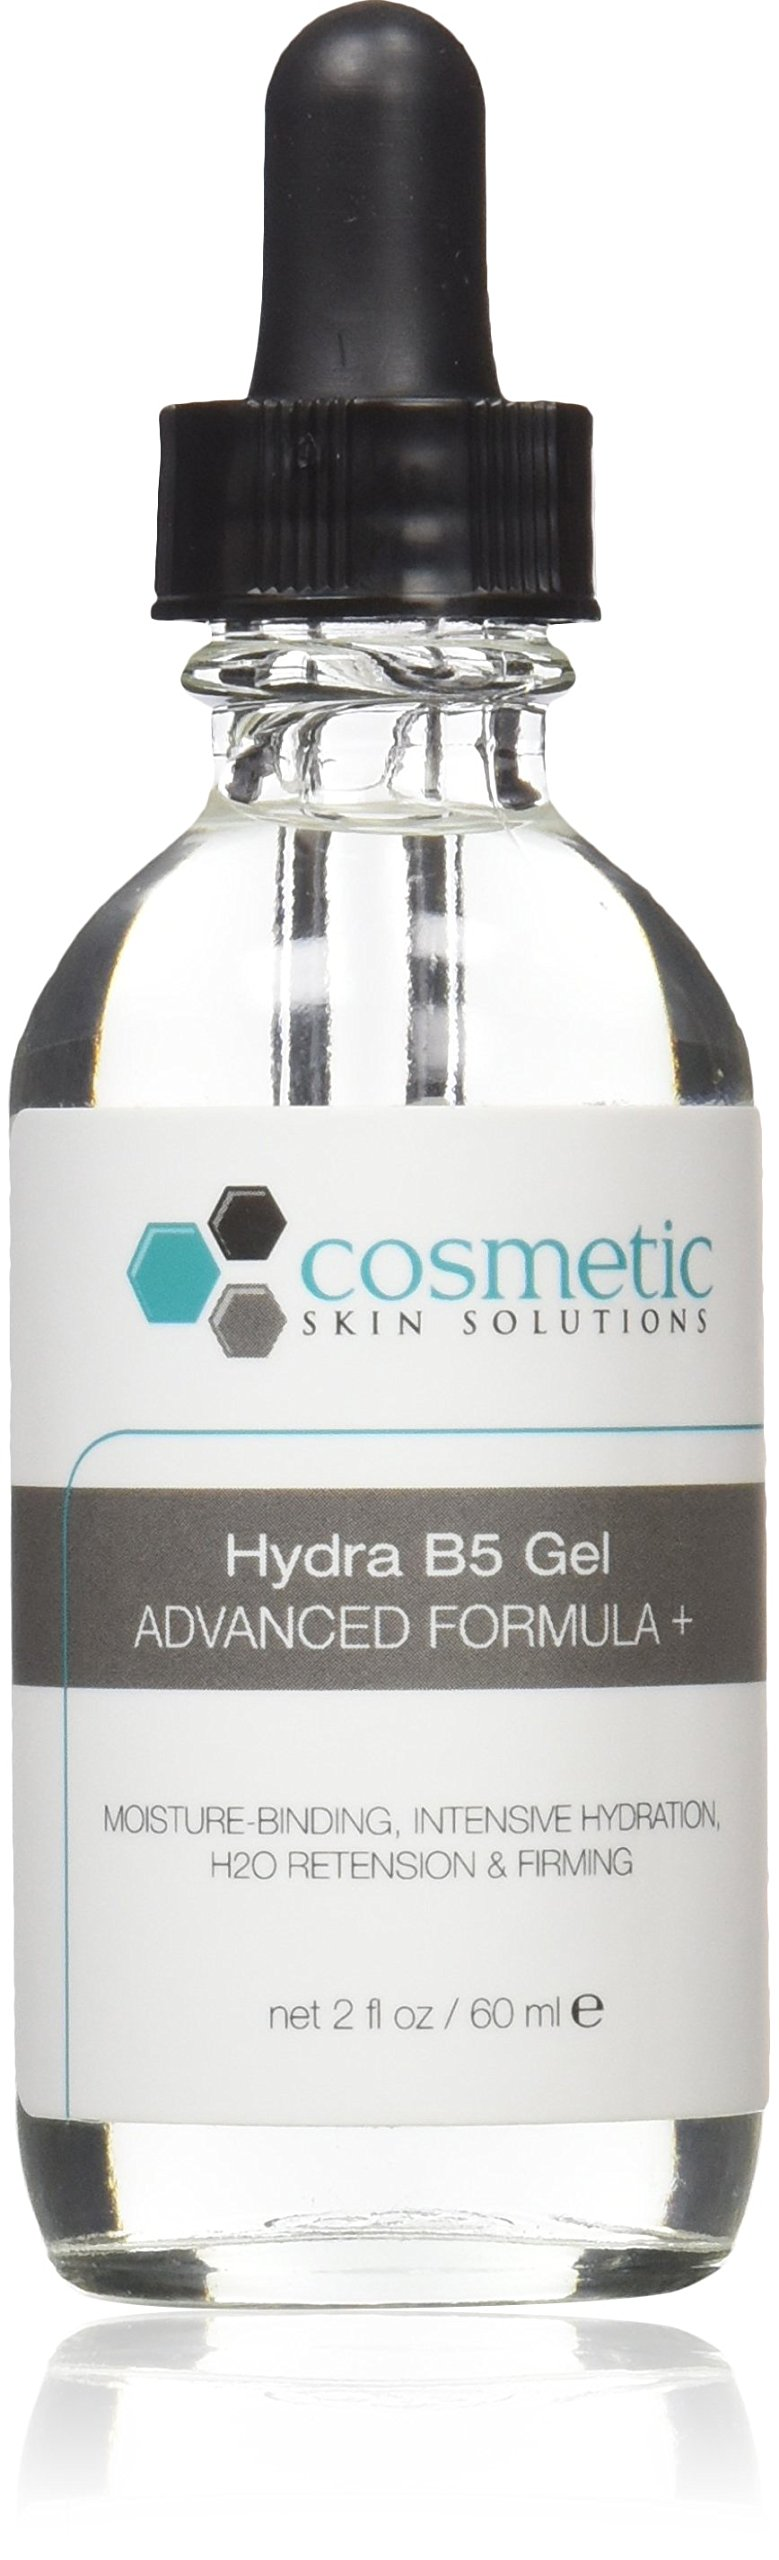 Best Pro Size Hydra B5 Gel Advanced Formula + 2 fl oz / 60 ml - Moisture-enhancing gel enriched with vitamin B5 and hyaluronic acid. Intensive hydration, H20 retension & firming.